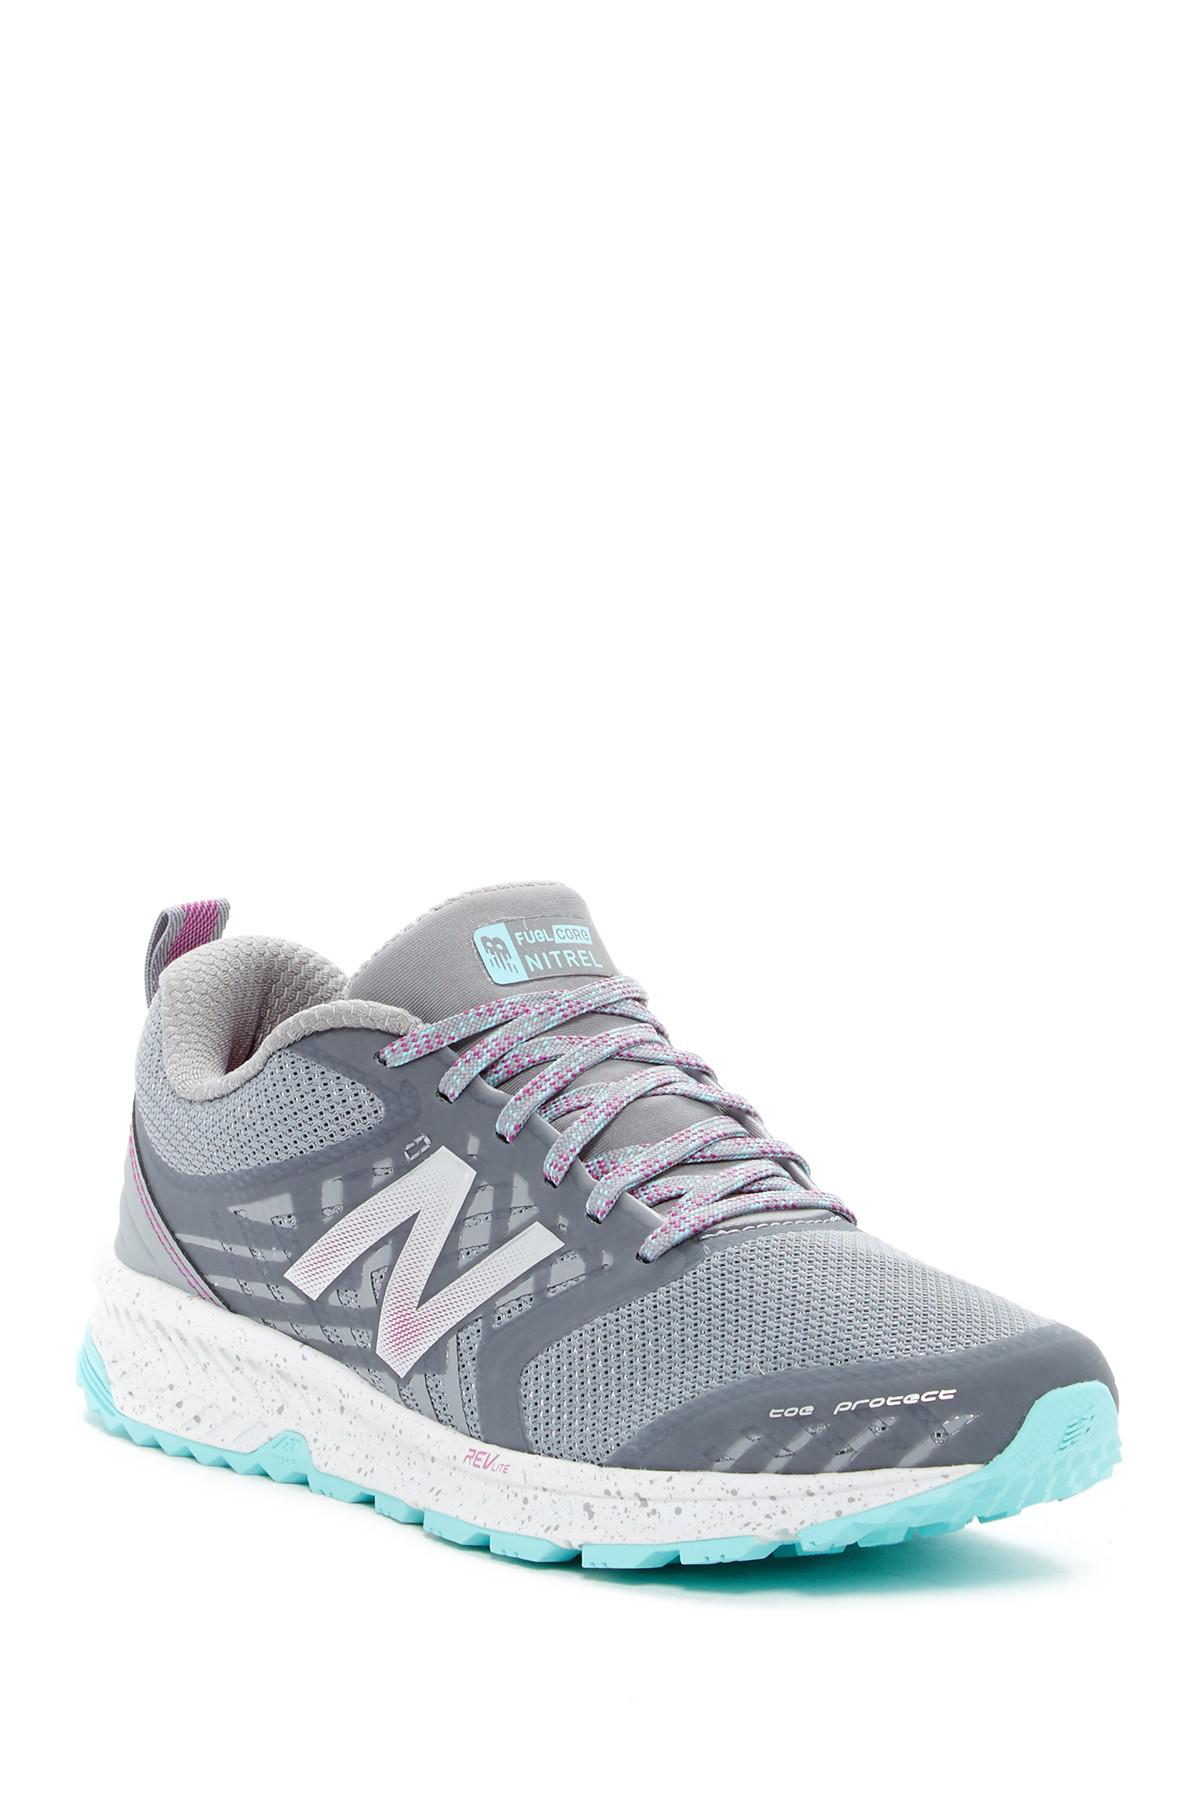 New Balance FuelCore NITREL Trail Running Sneaker - Wide Width Available TFMVvEUU4